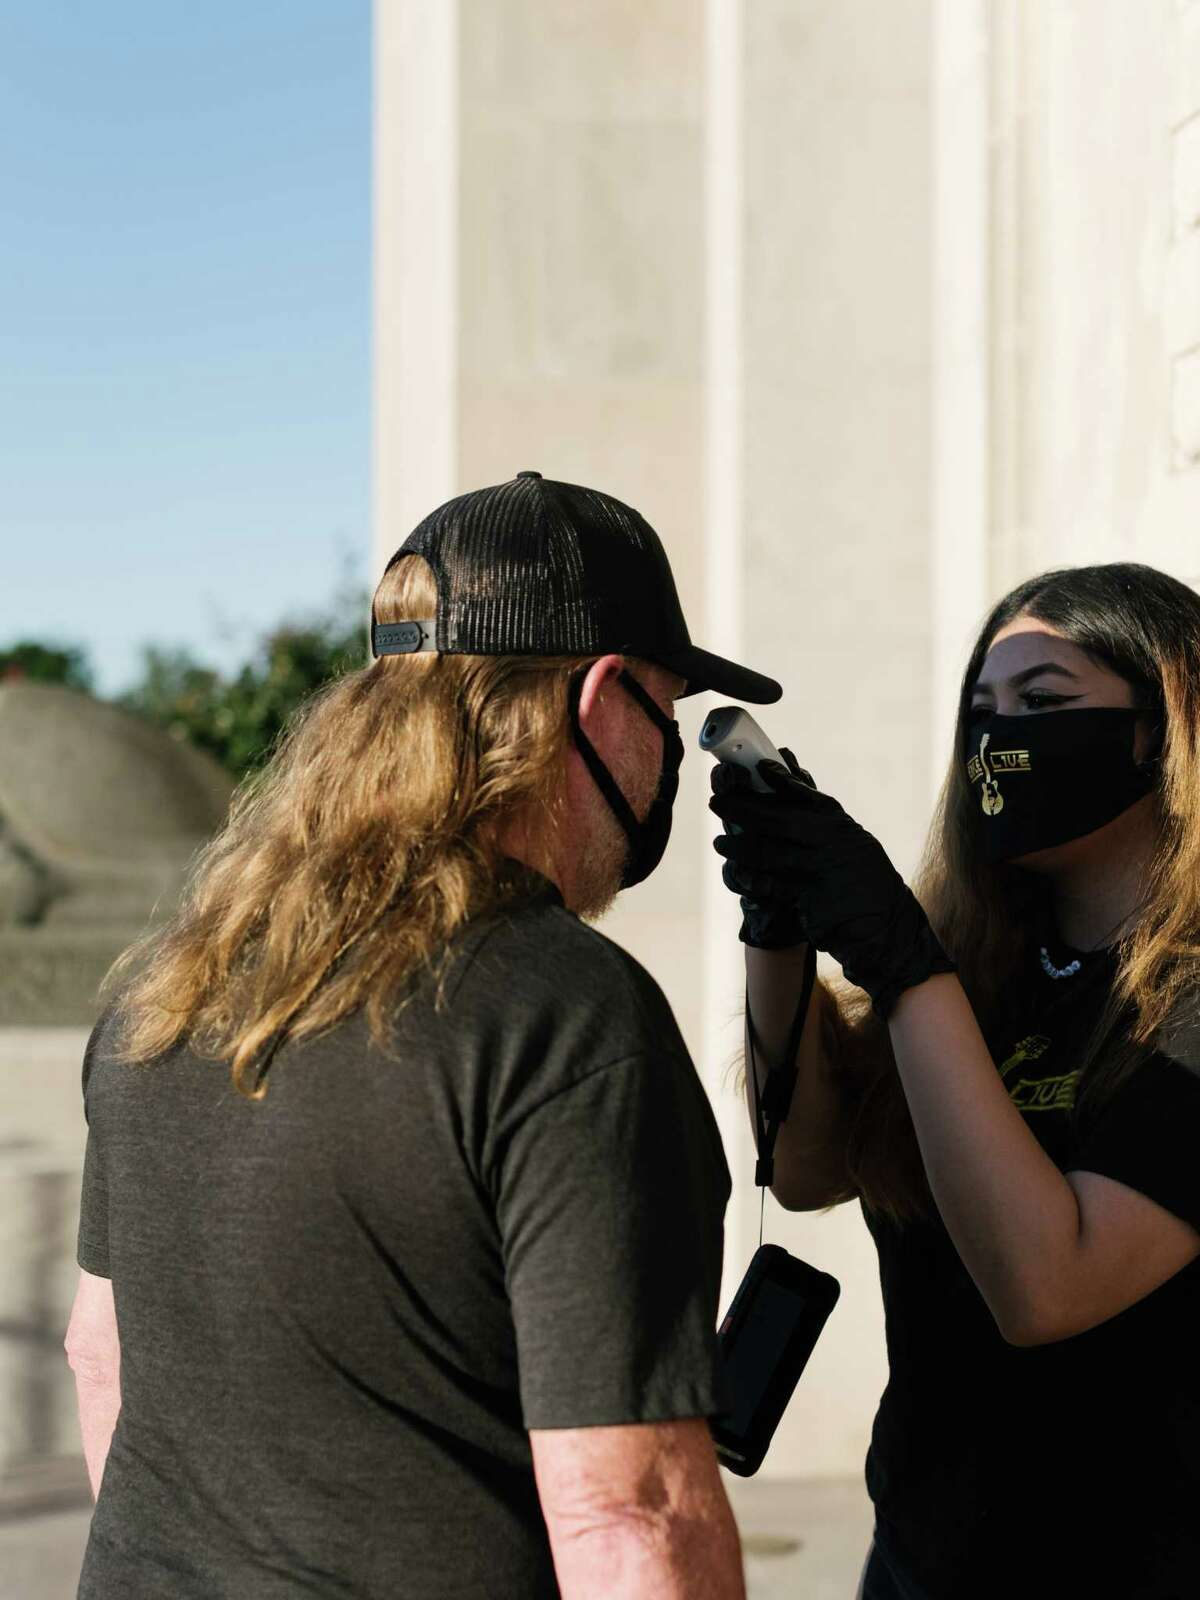 An attendee has their temperature checked outside the venue for Travis McCready's concert in Fort Smith, Ark., May 18, 2020. Fans who had to have their temperatures taken and wear masks for the show said it was worth it for the experience of hearing live music again. (Rana Young/The New York Times)